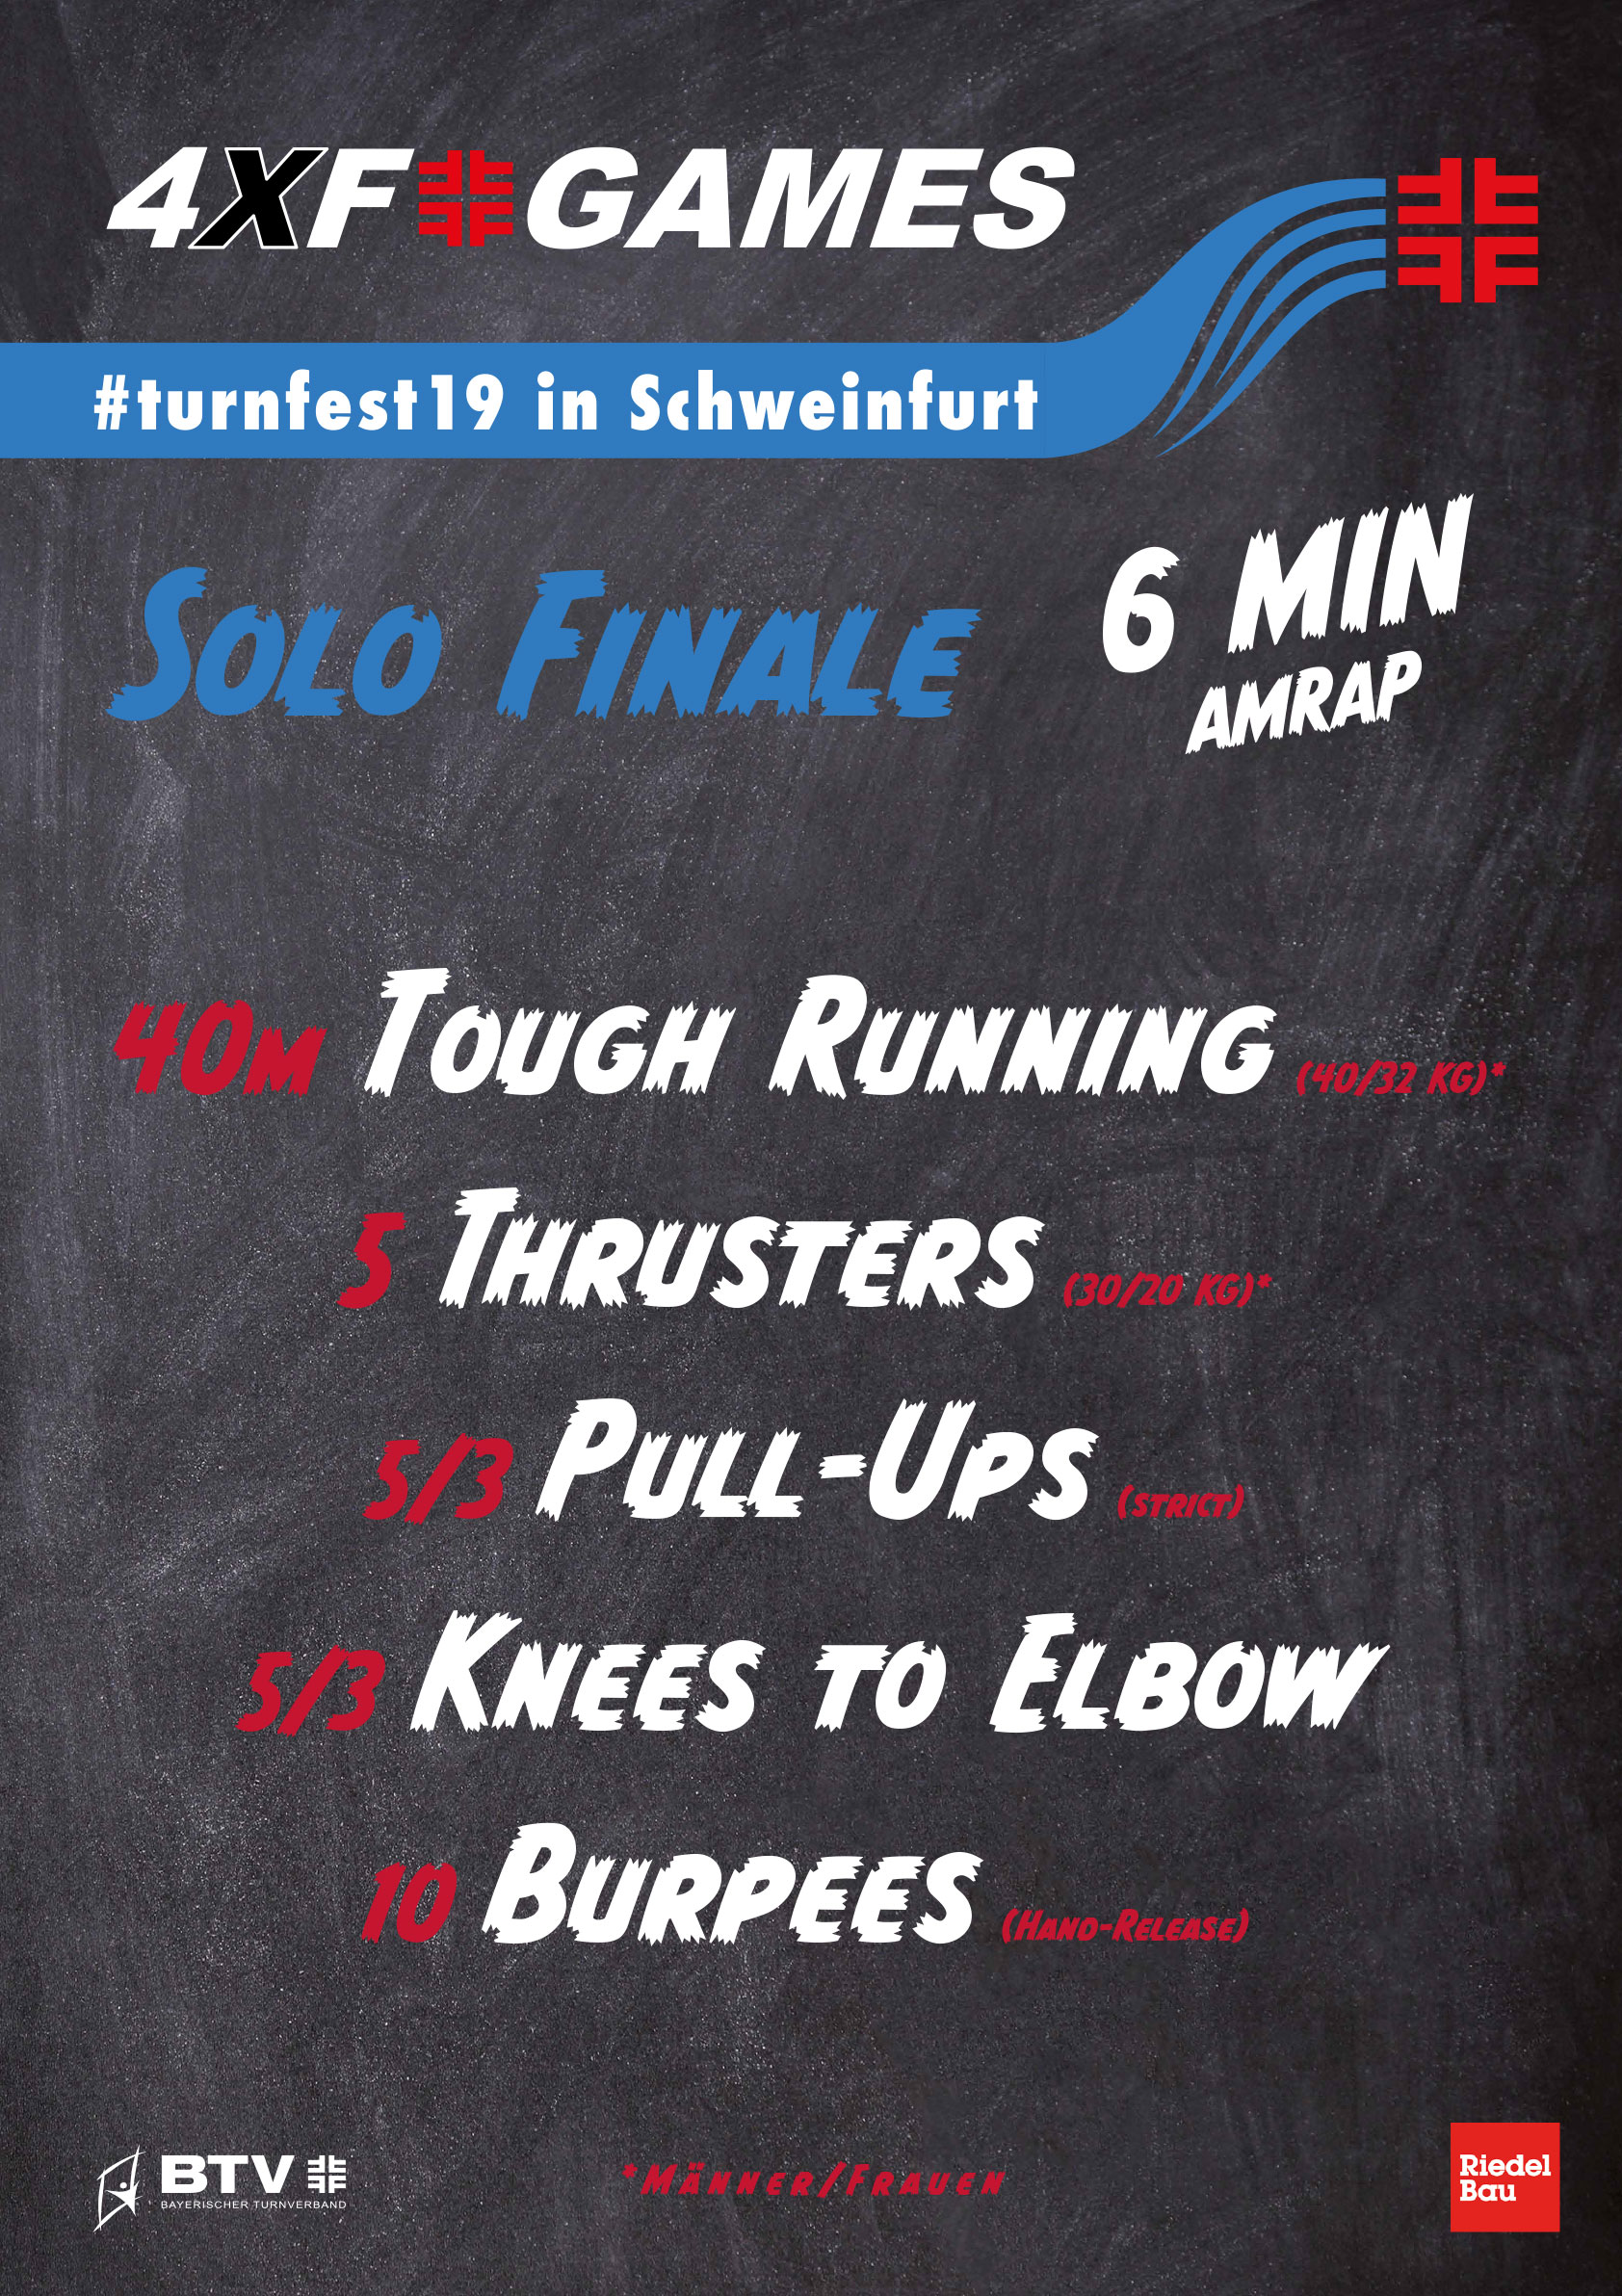 4xf games turnfest19 wod solo finals